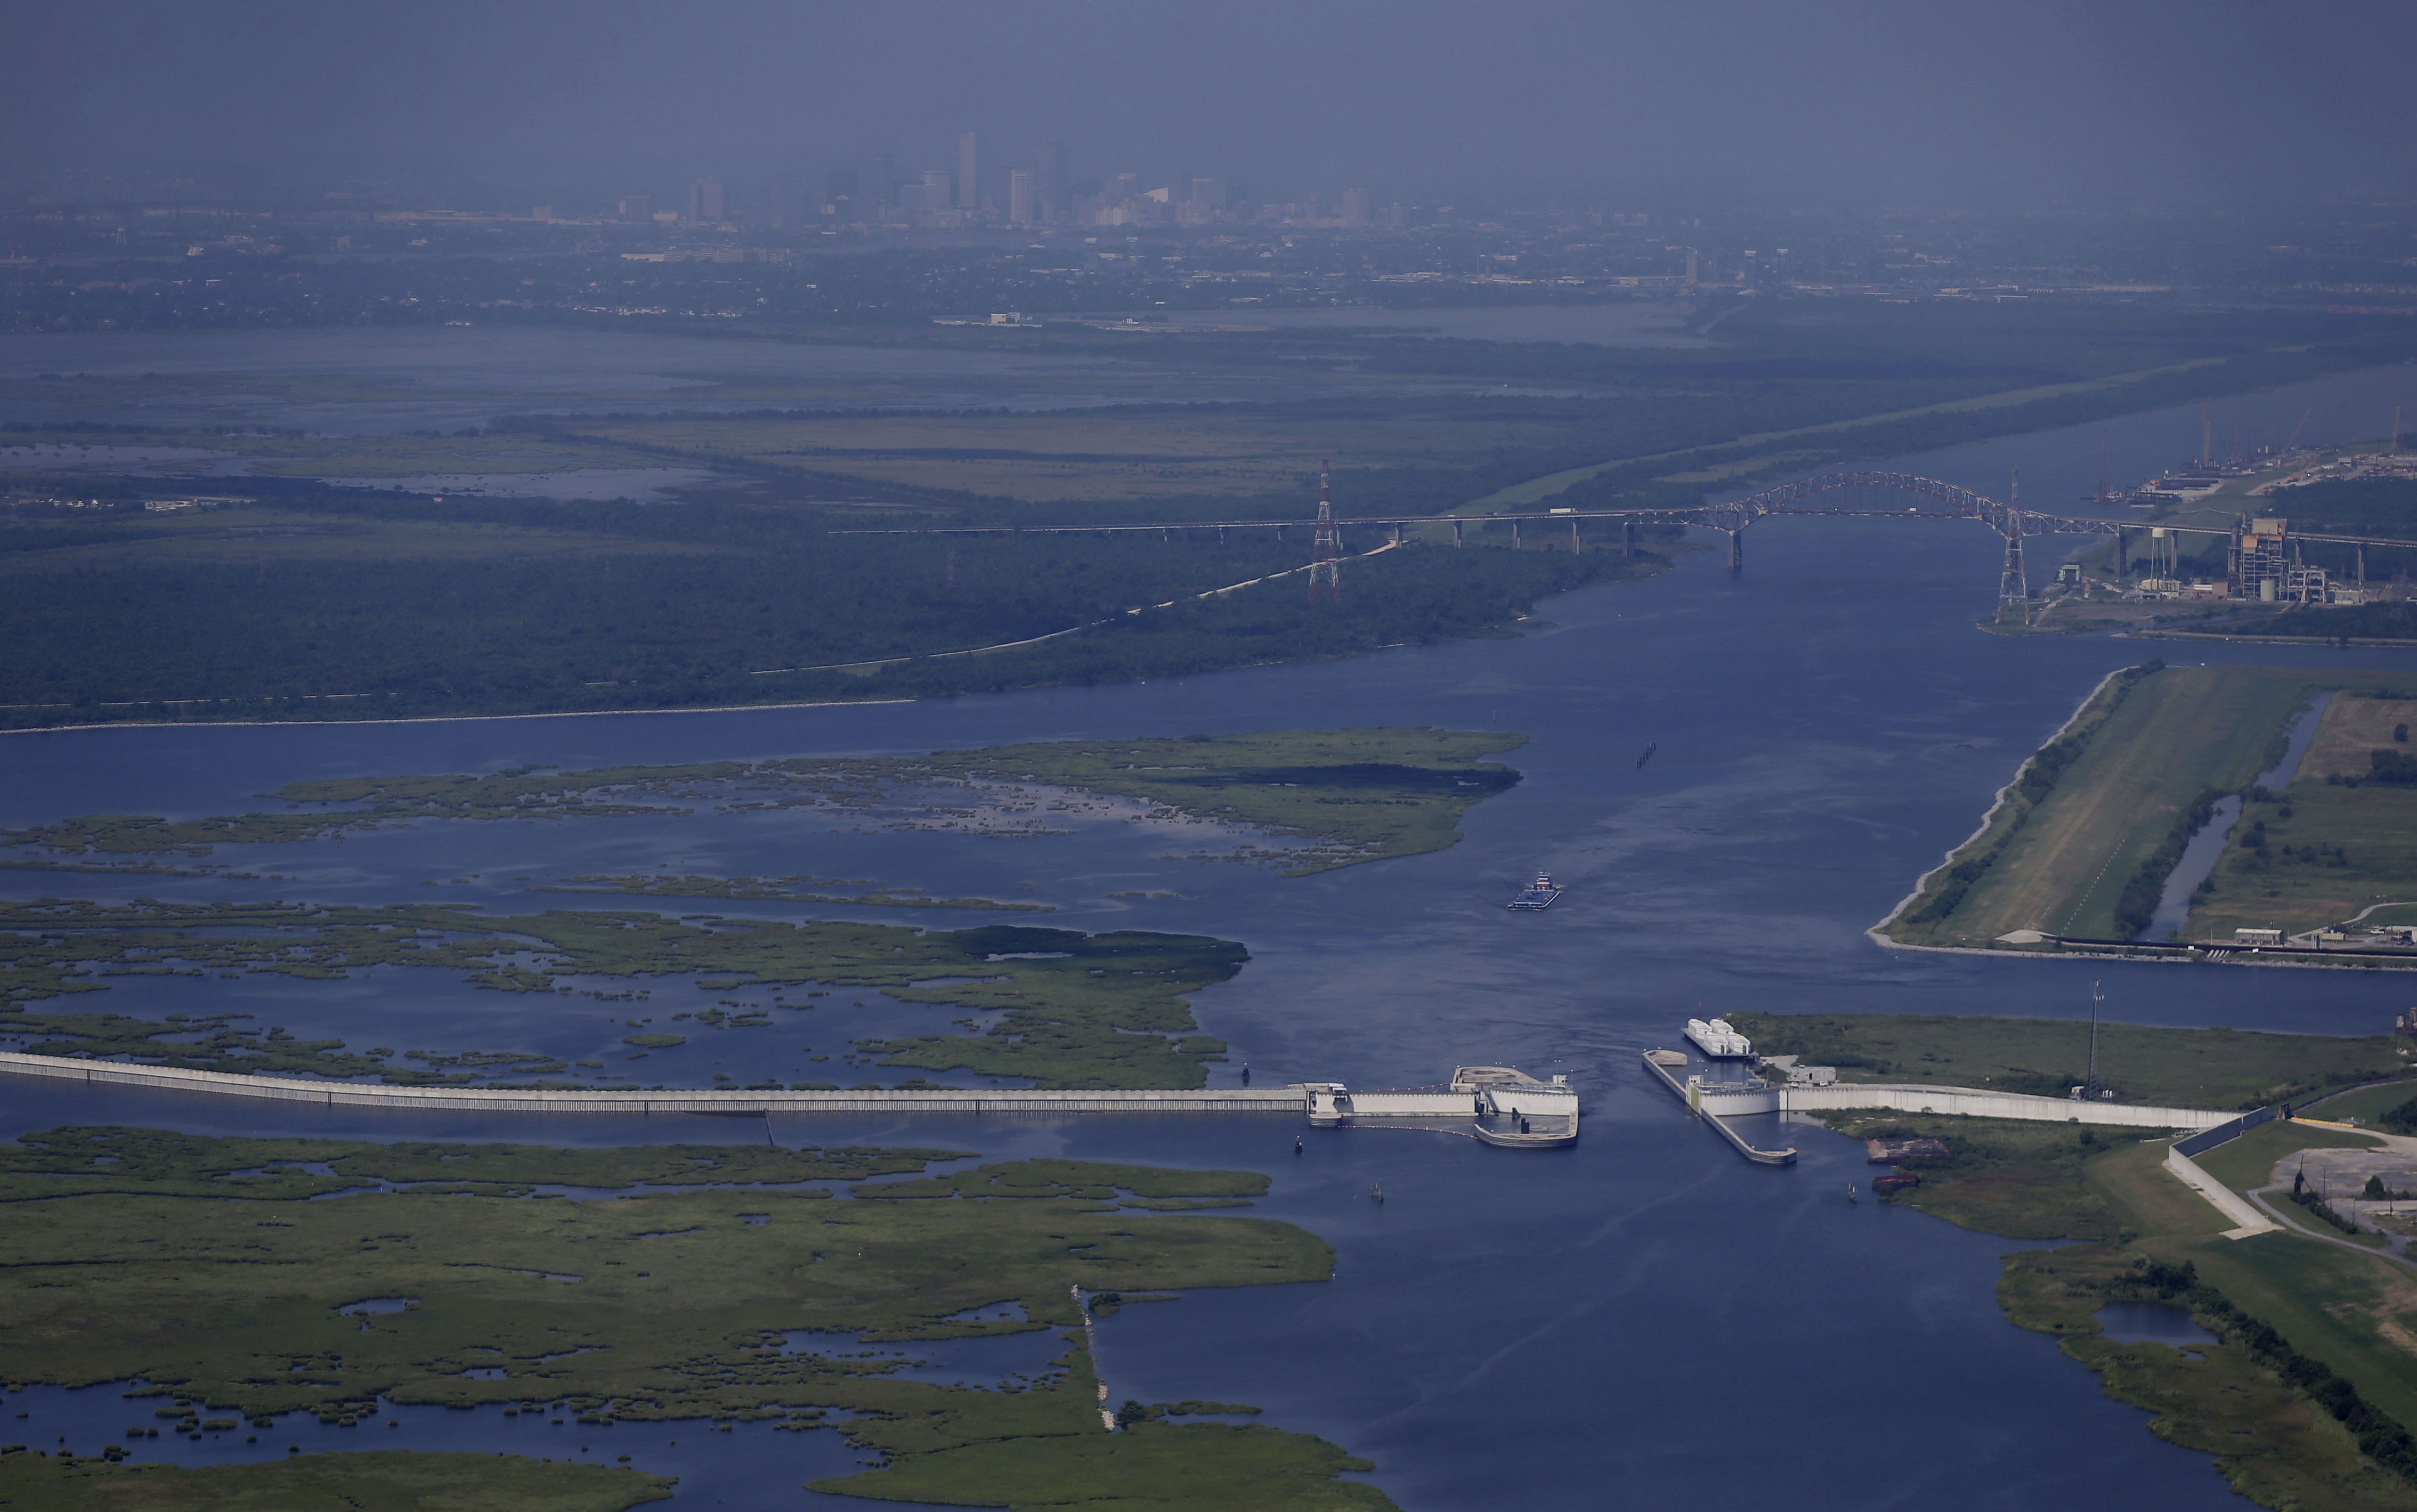 This aerial photo made during a flight provided by the National Wildlife Federation and Southern Wings shows the Lake Borne storm surge barrier in St. Bernard Parish, Louisiana, on Monday, Aug. 10, 2015, which was built after Hurricane Katrina, with the skyline of New Orleans in the background. Scientists say Katrina was especially destructive because of the disappearance of buffer land between New Orleans and the Gulf. Photo: AP